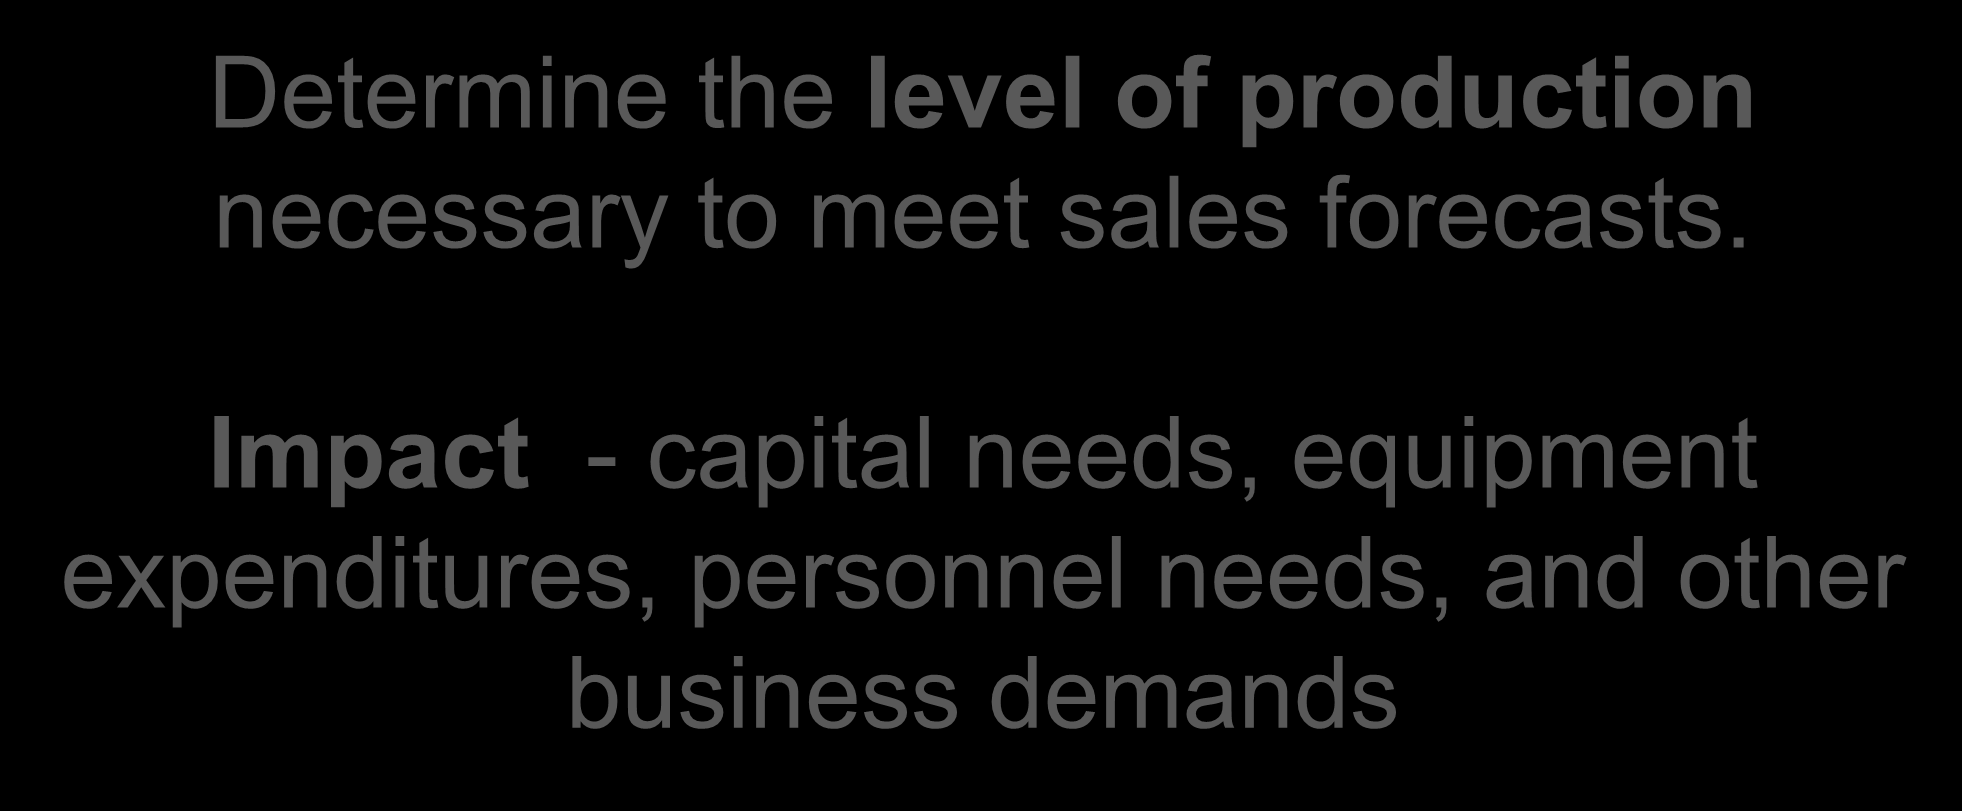 Analysis: Production Determine the level of production necessary to meet sales forecasts.